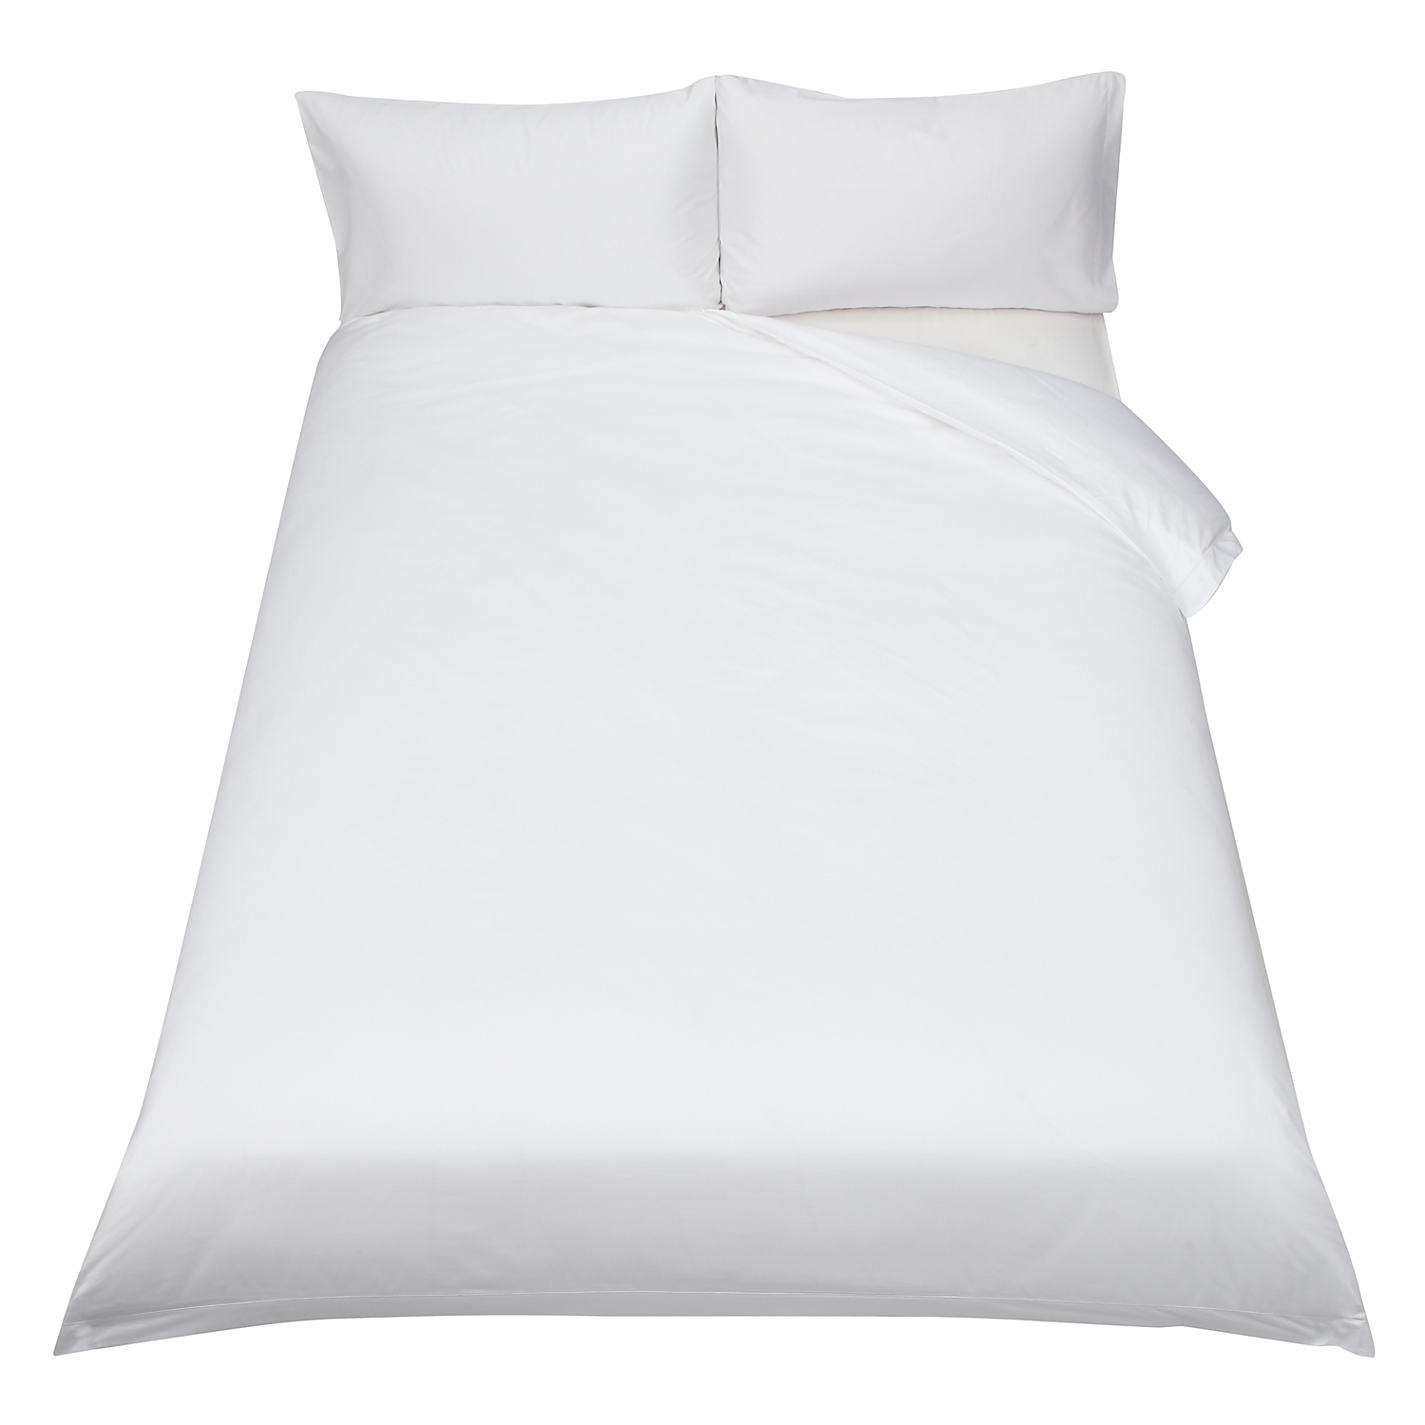 White Duvet Cover | Duvet Cover Queen | Nordstrom Bedding